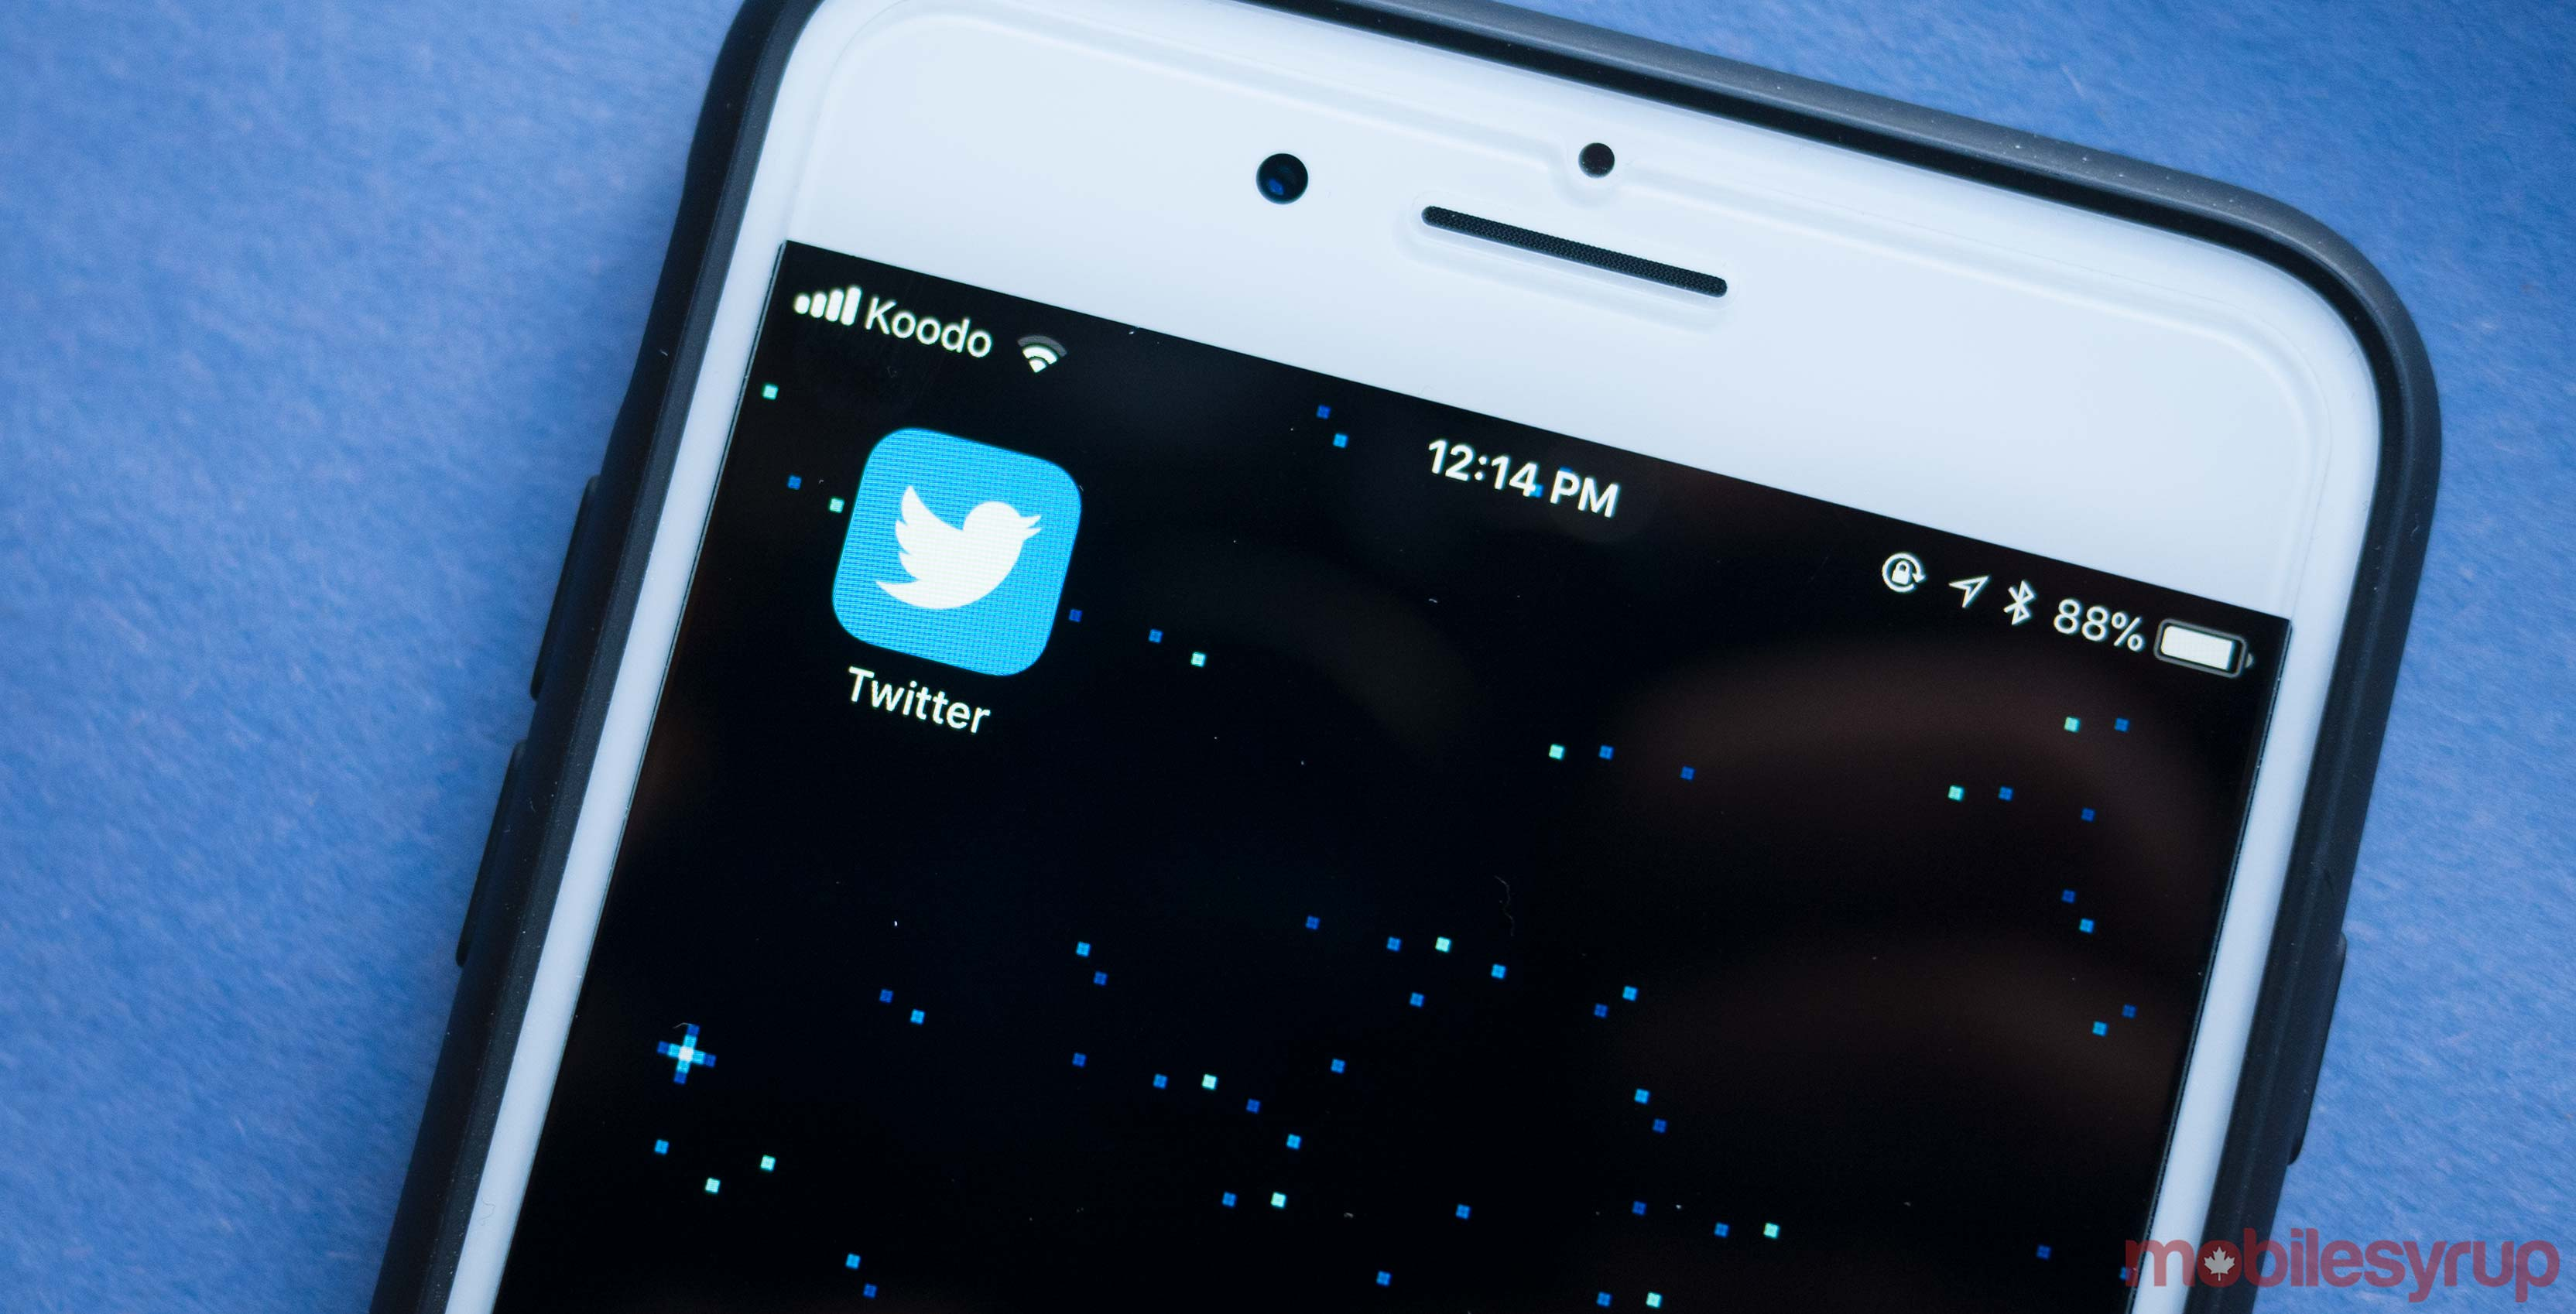 Twitter app on iPhone